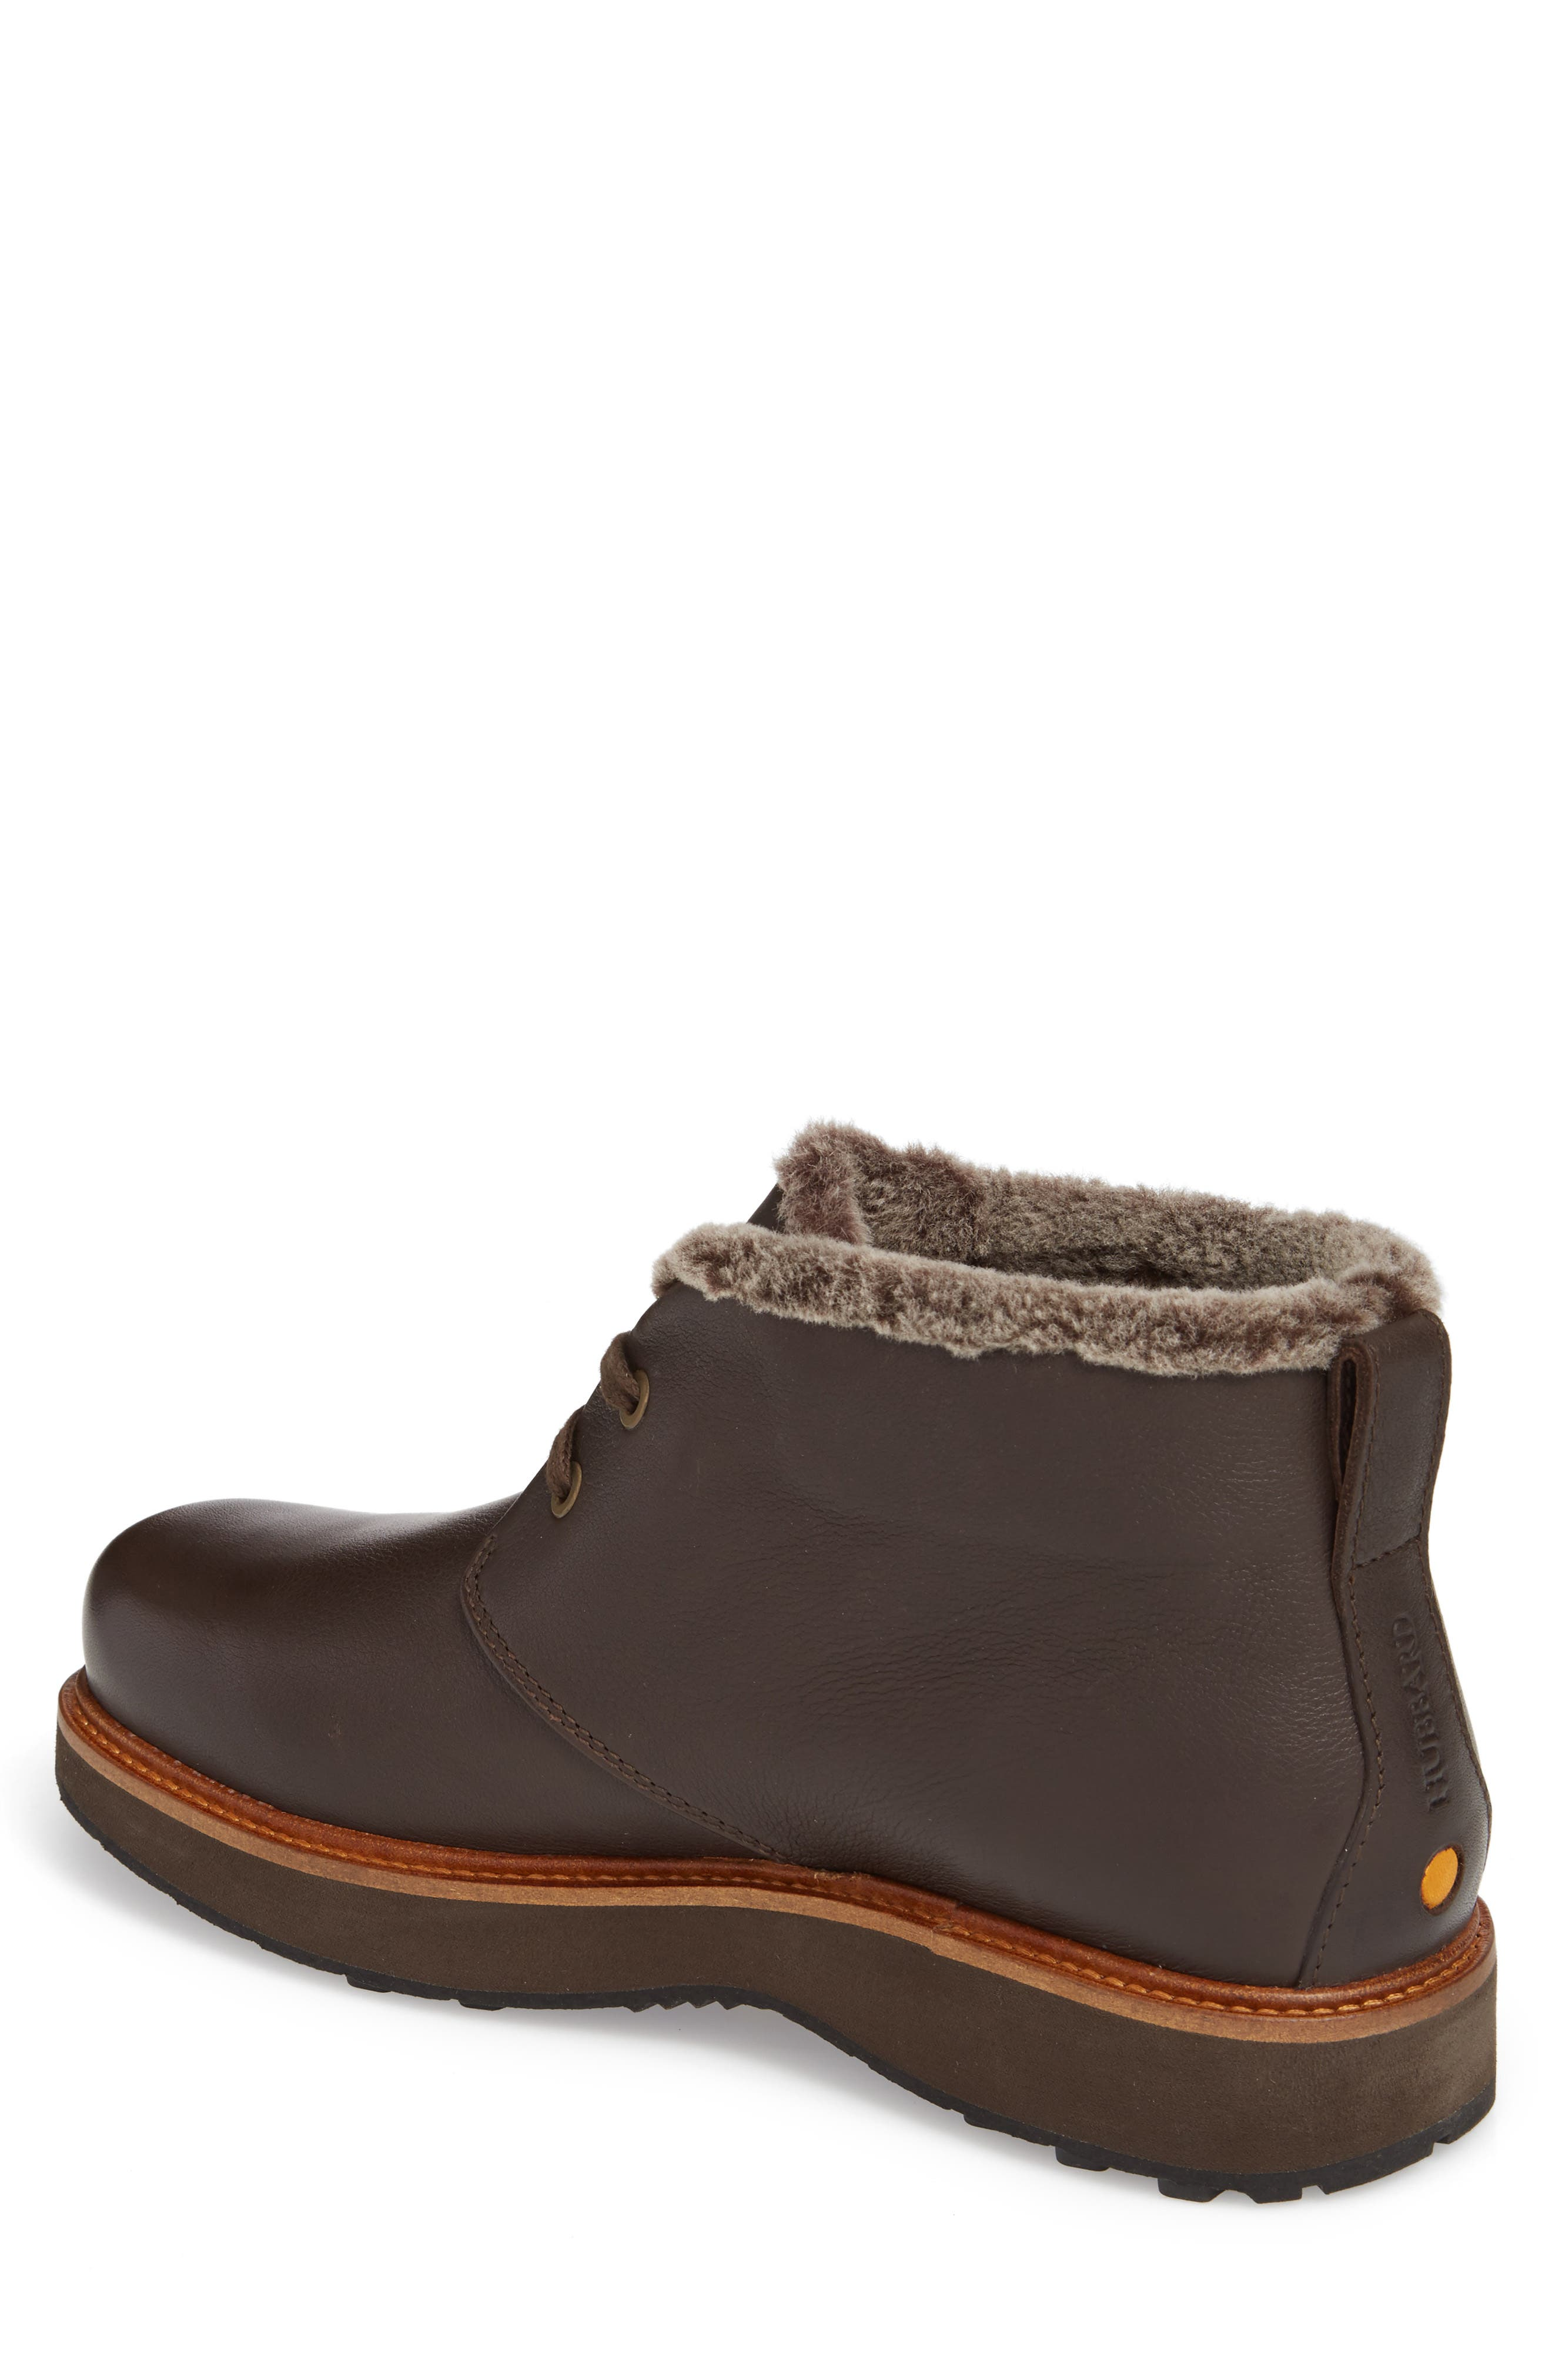 Winter's Day Waterproof Gore-Tex<sup>®</sup> Genuine Shearling Lined Chukka Boot,                             Alternate thumbnail 2, color,                             Espresso Brown Leather